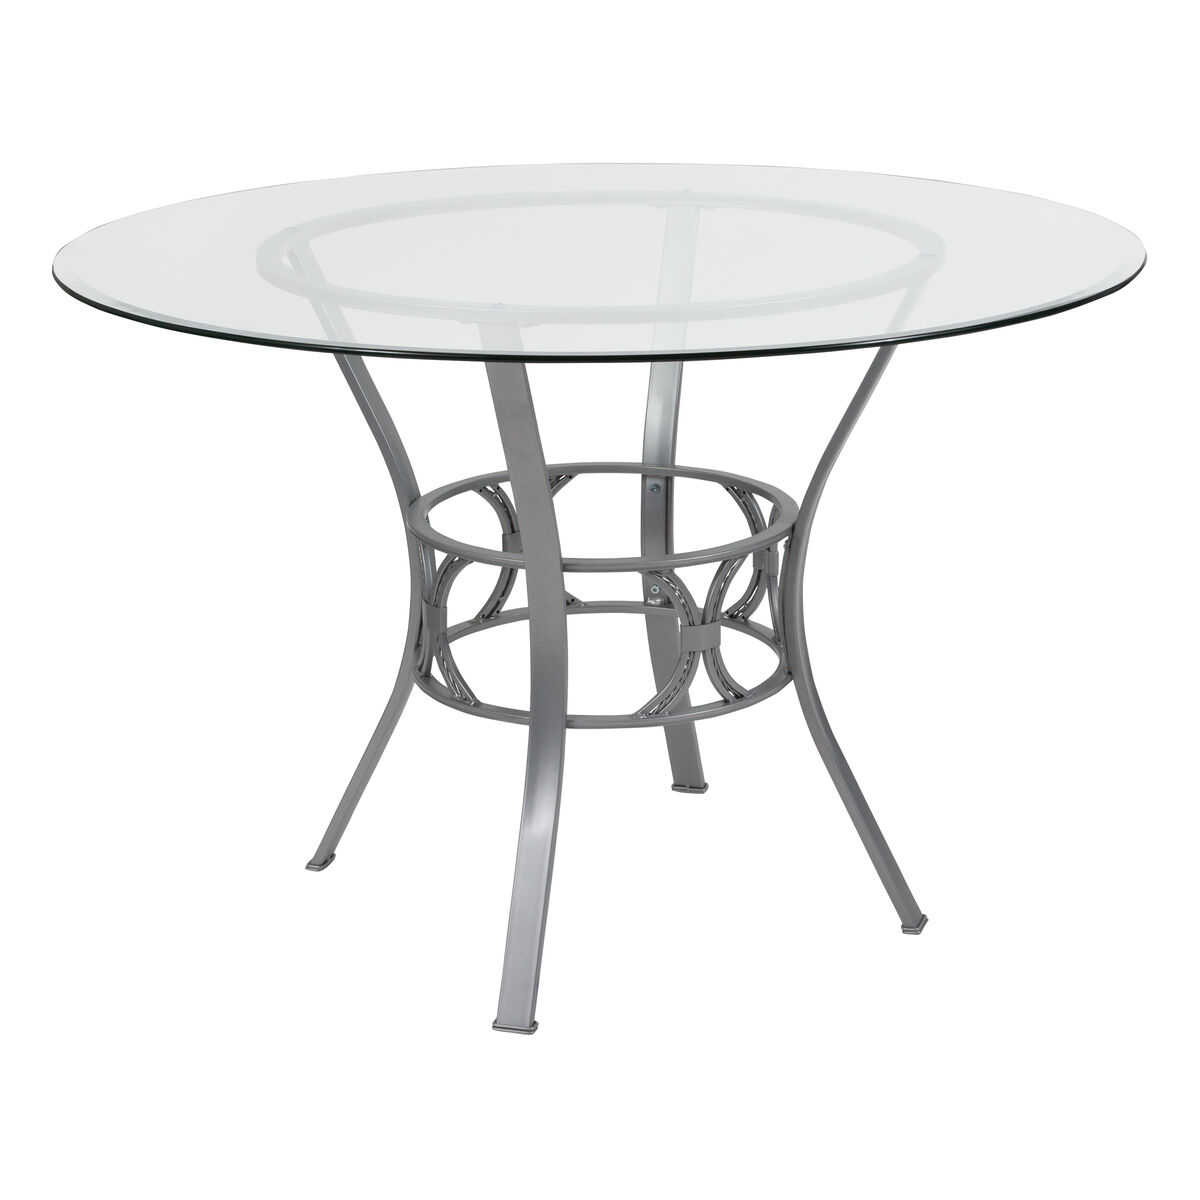 Our Carlisle 45 Round Glass Dining Table With Silver Metal Frame Is On